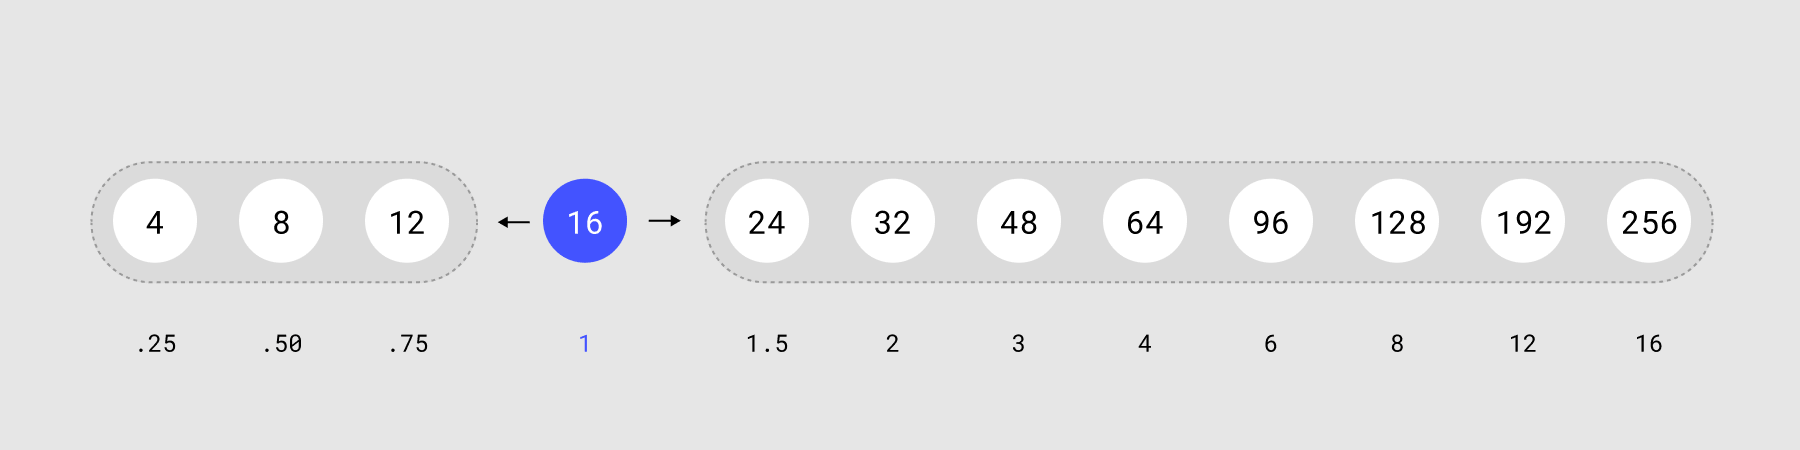 Vertical scale base number